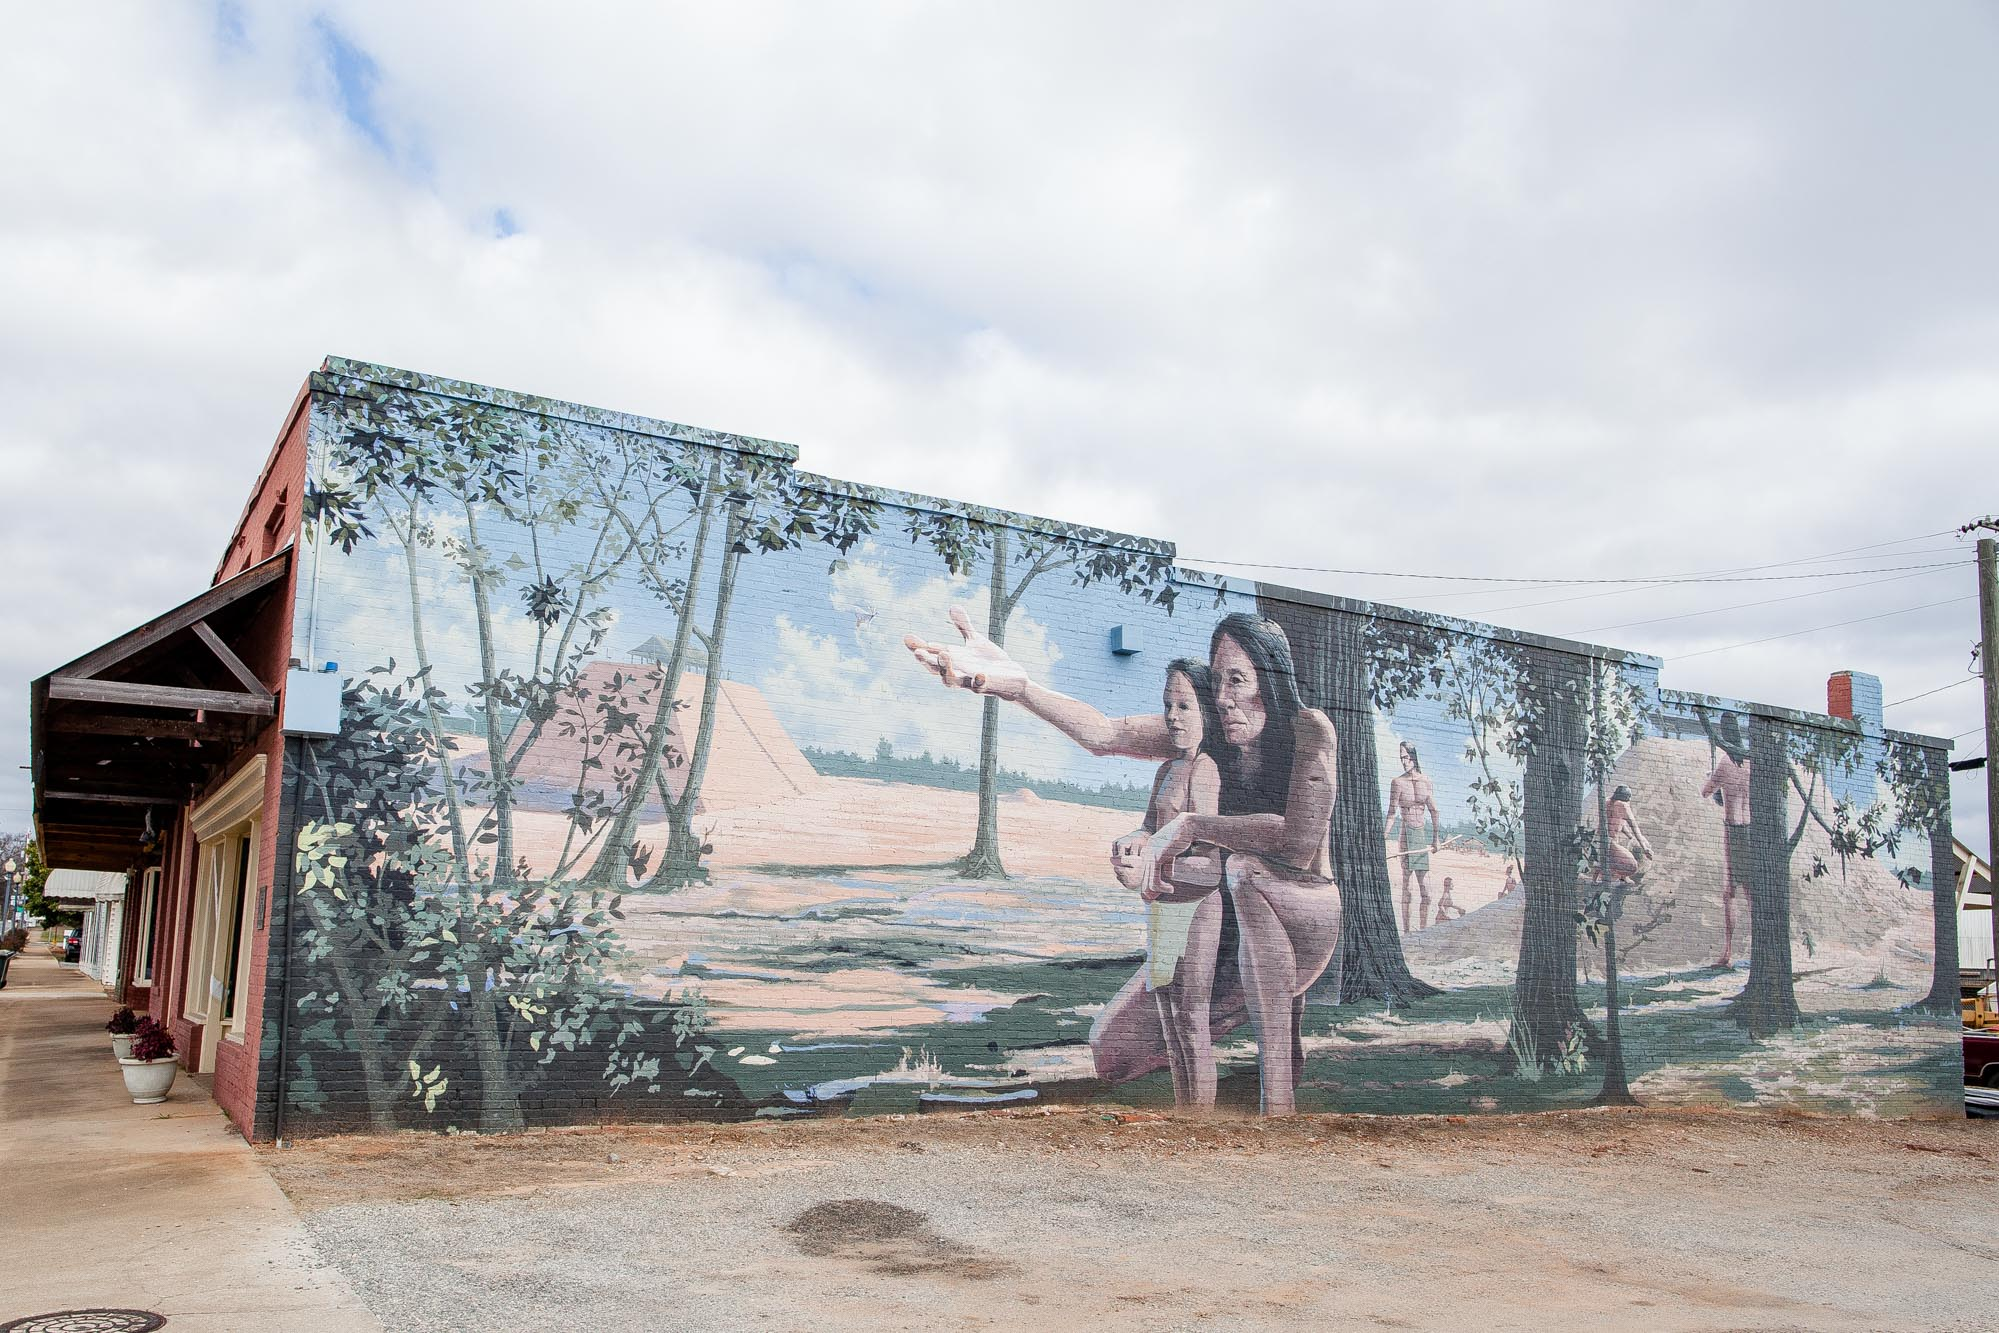 Mural Artist, Wes Hardin, created this very personal view of the native Kolomoki Indians with a prominent father-son relationship. It displays the Kolomoki Mounds in the background. This mural is located on the exterior wall of the Early County Museum.